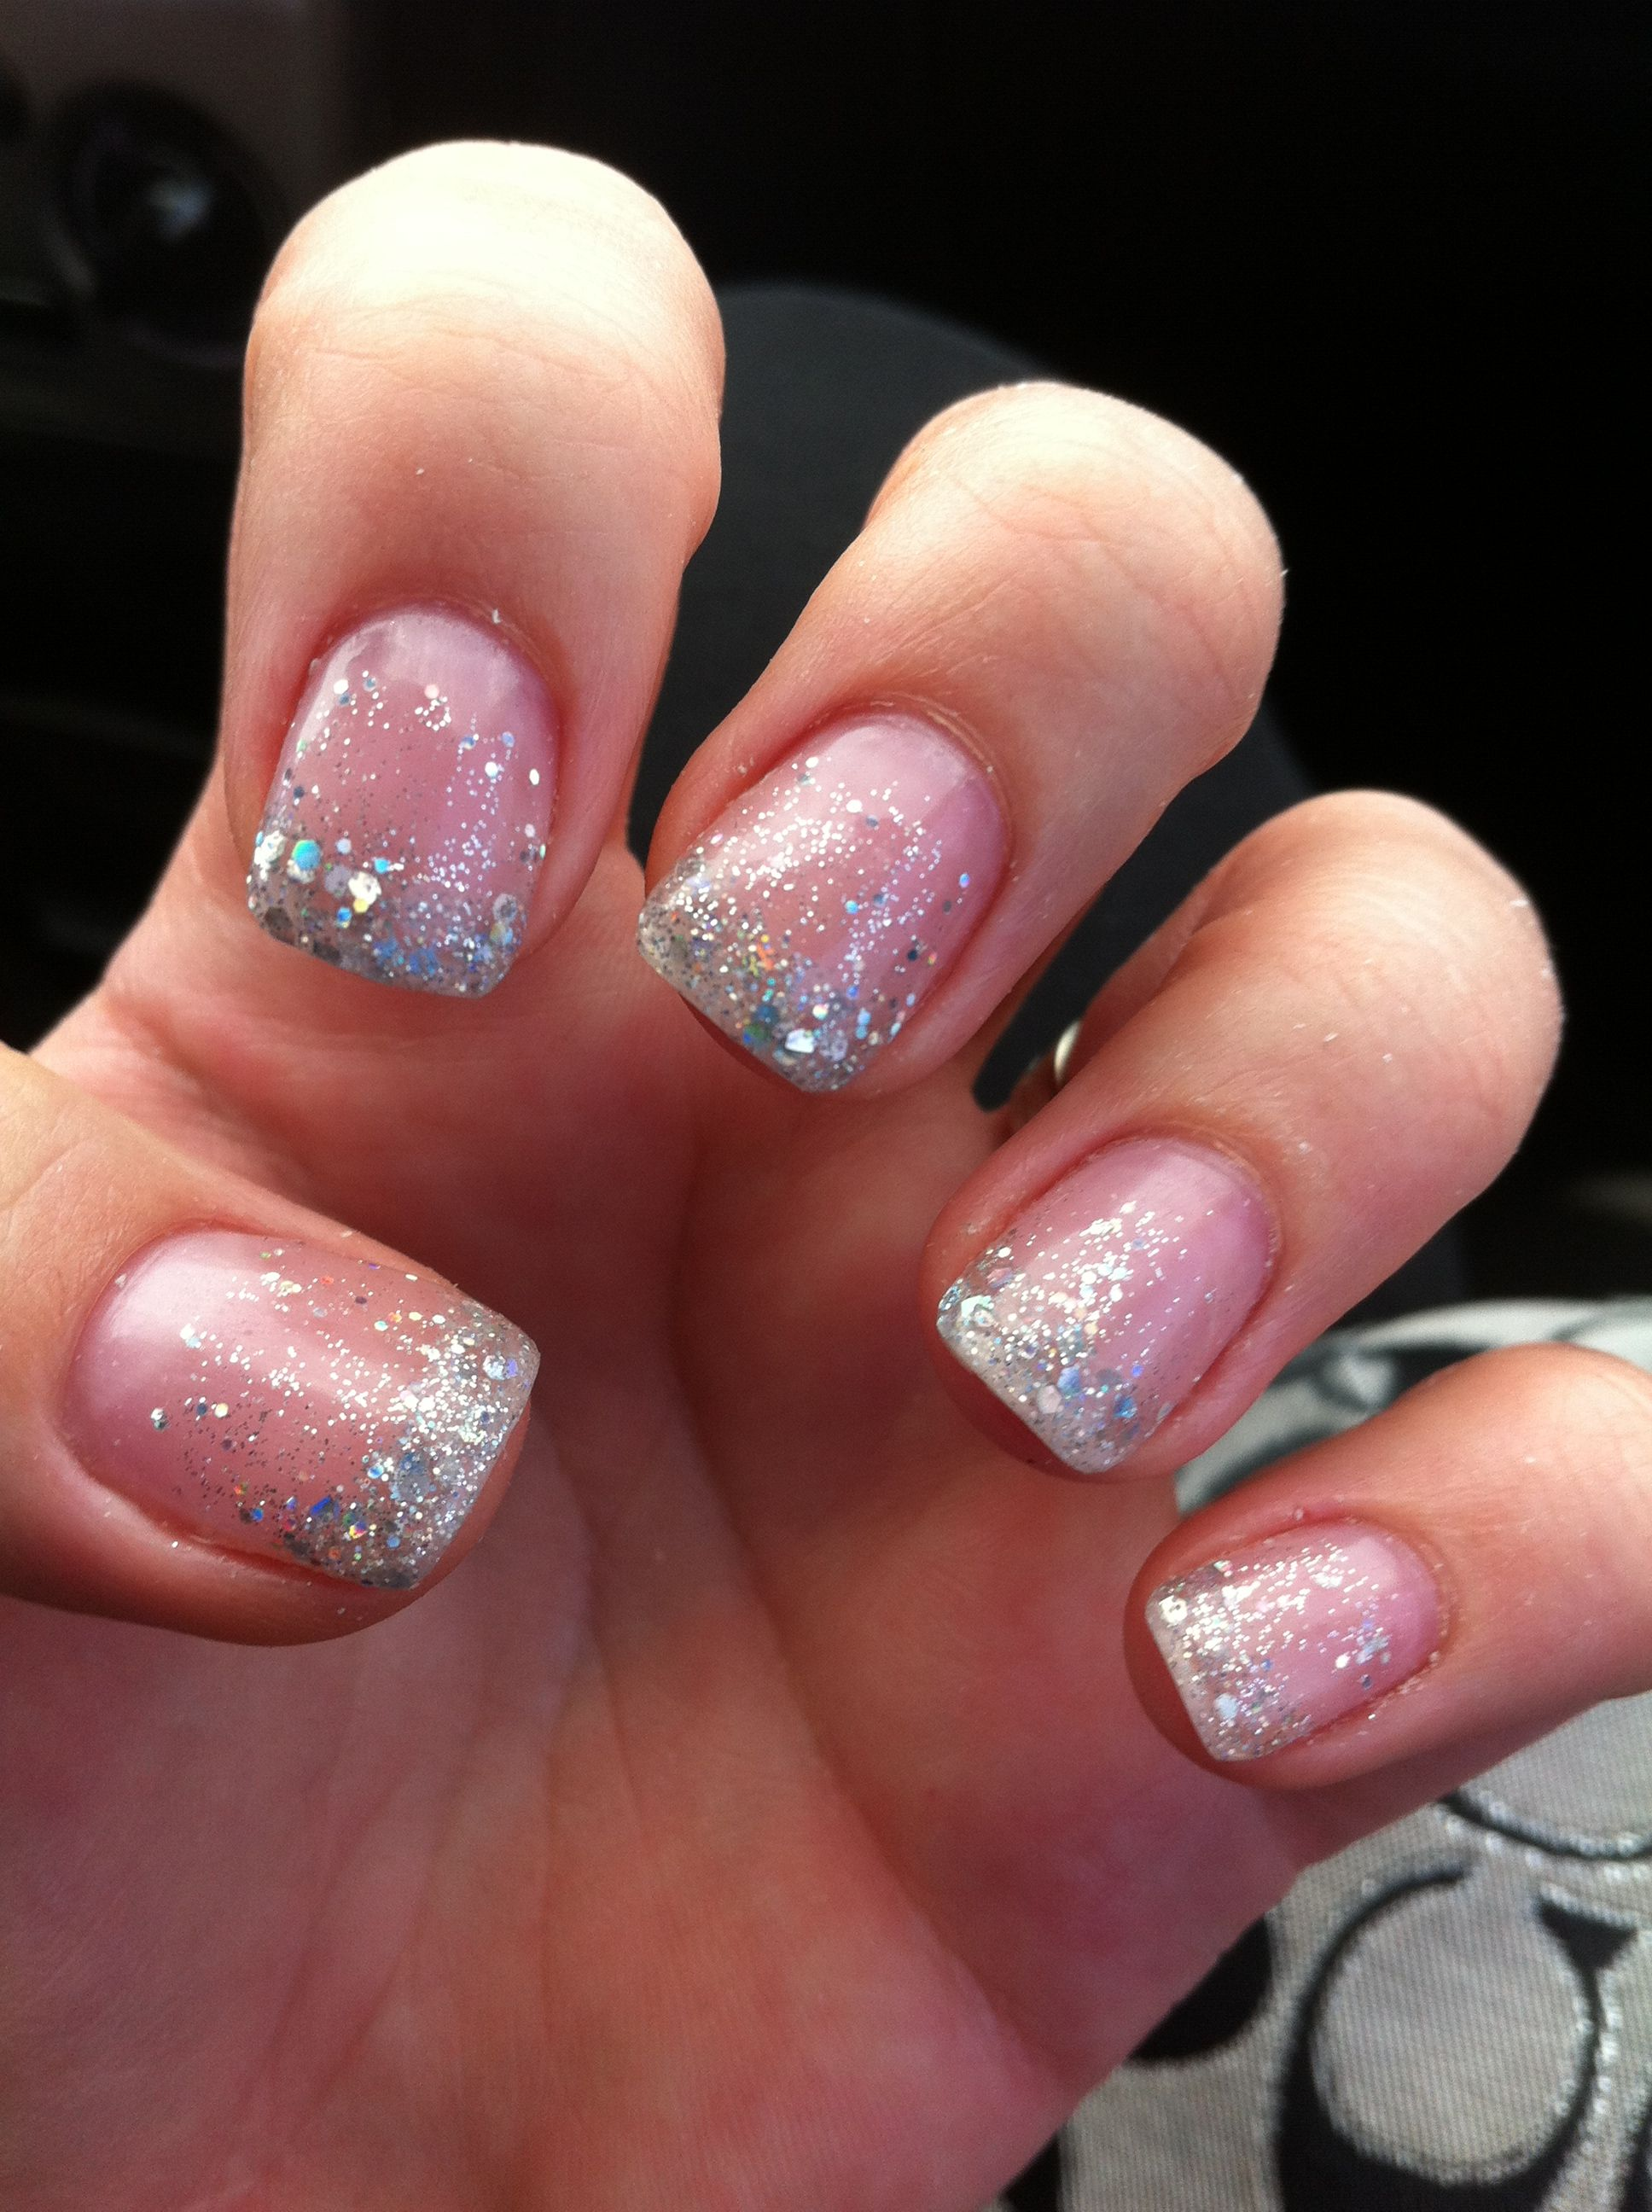 Pink and White solar nail designs